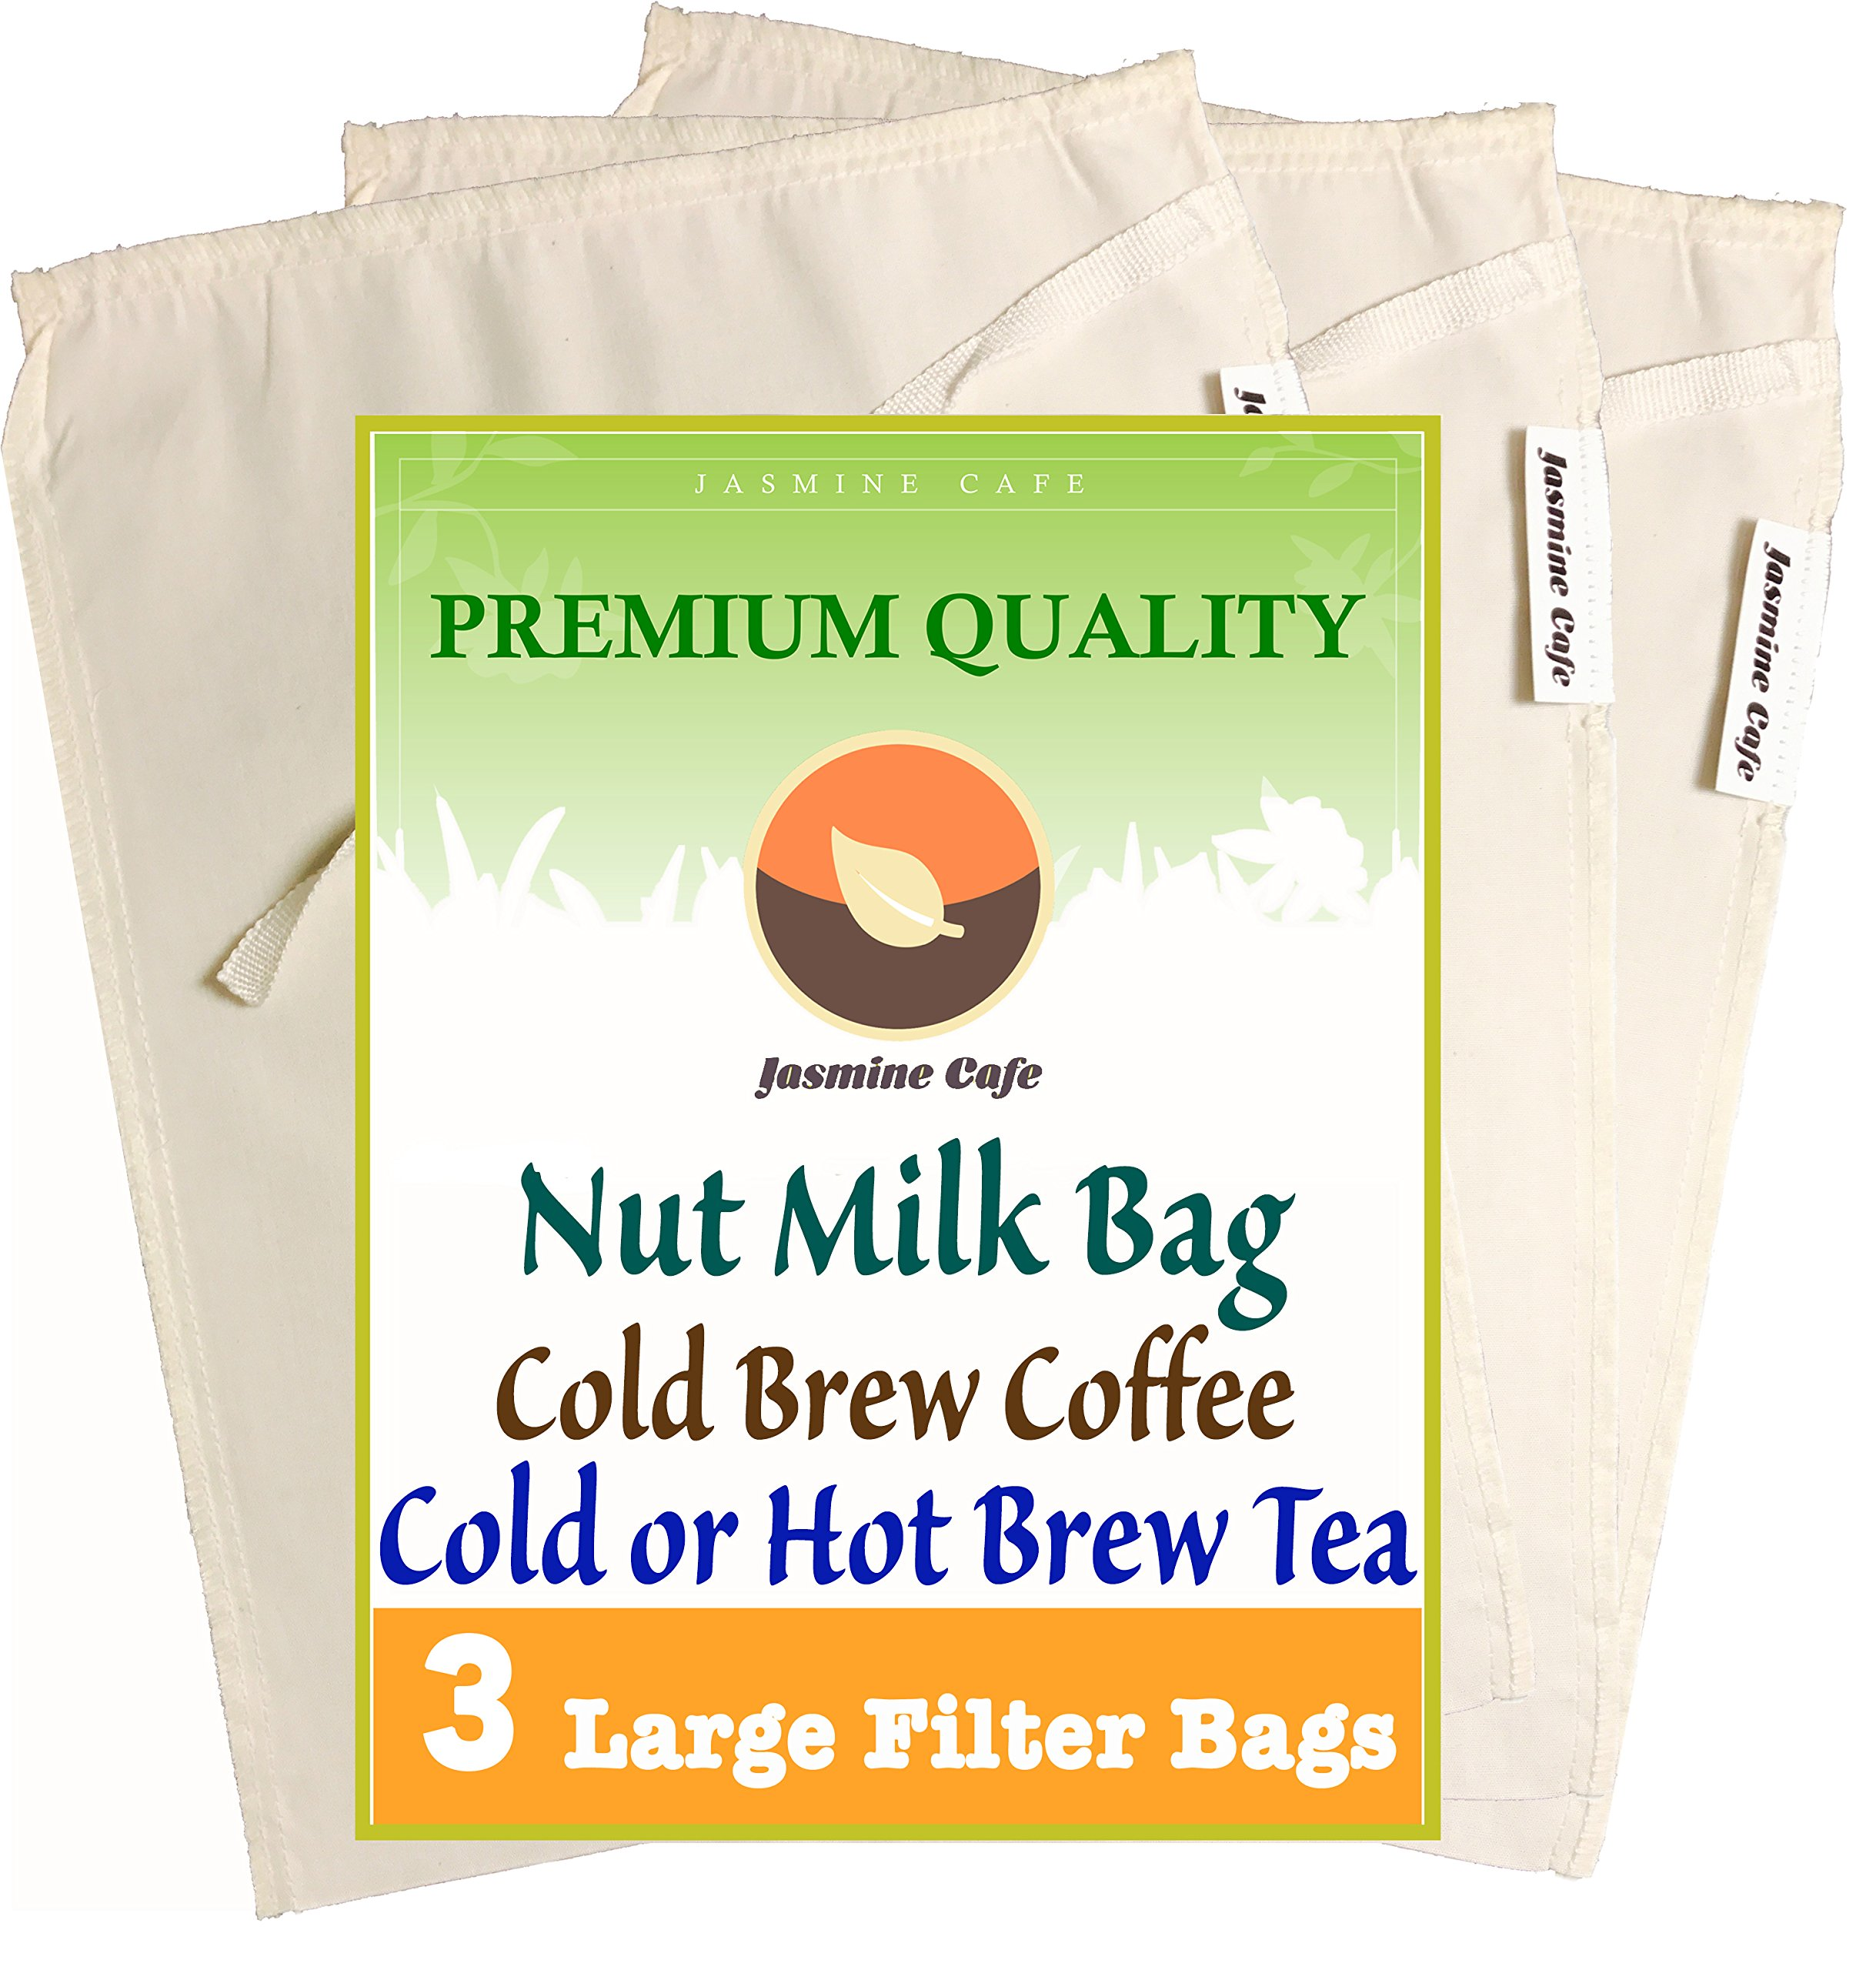 3 Pack (Large 11''x8'') Organic Cotton Nut Milk Bag & Cold Brew Coffee - Great Strainer for Coffee Tea & Nut Milk - Reusable & Eco-Friendly - 100% Safe to Use - Good for Commercial and Household by Jasmine Café (Image #1)